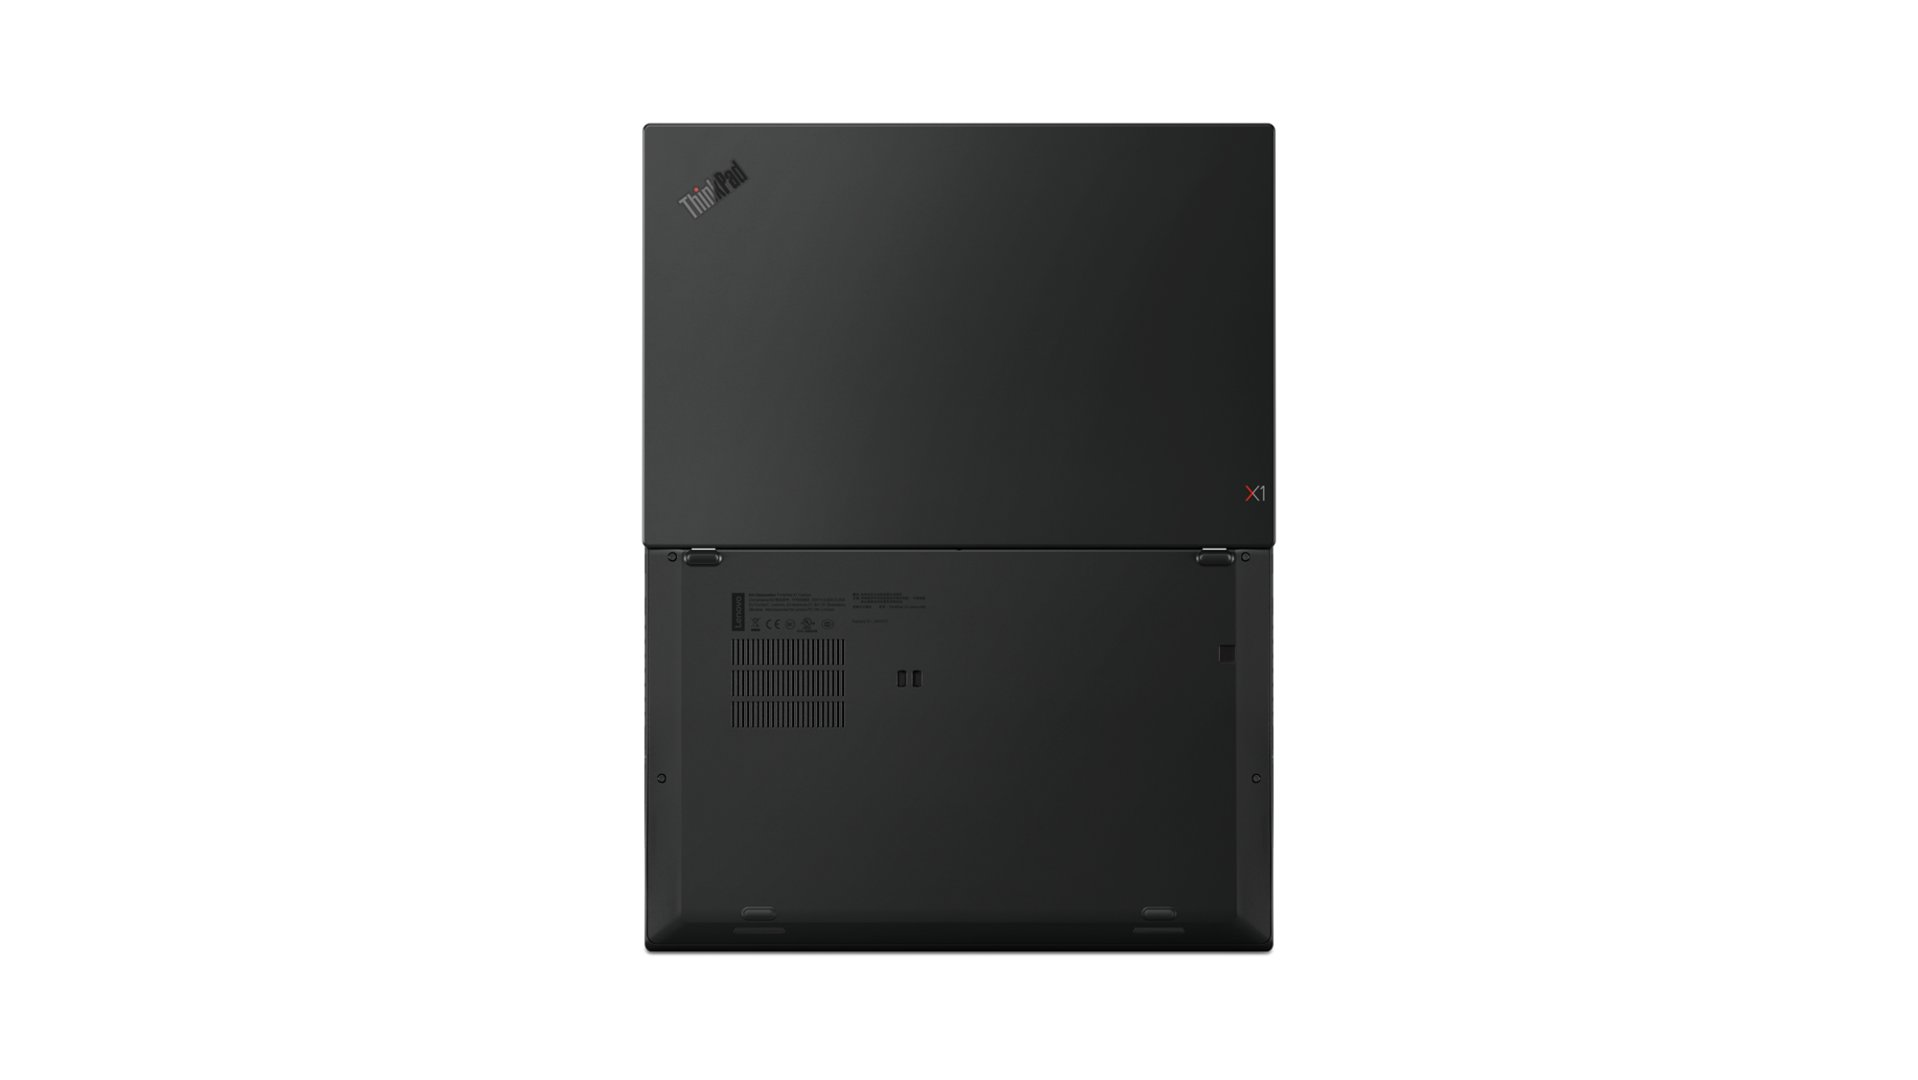 Lenovo ThinkPad X1 Carbon G6